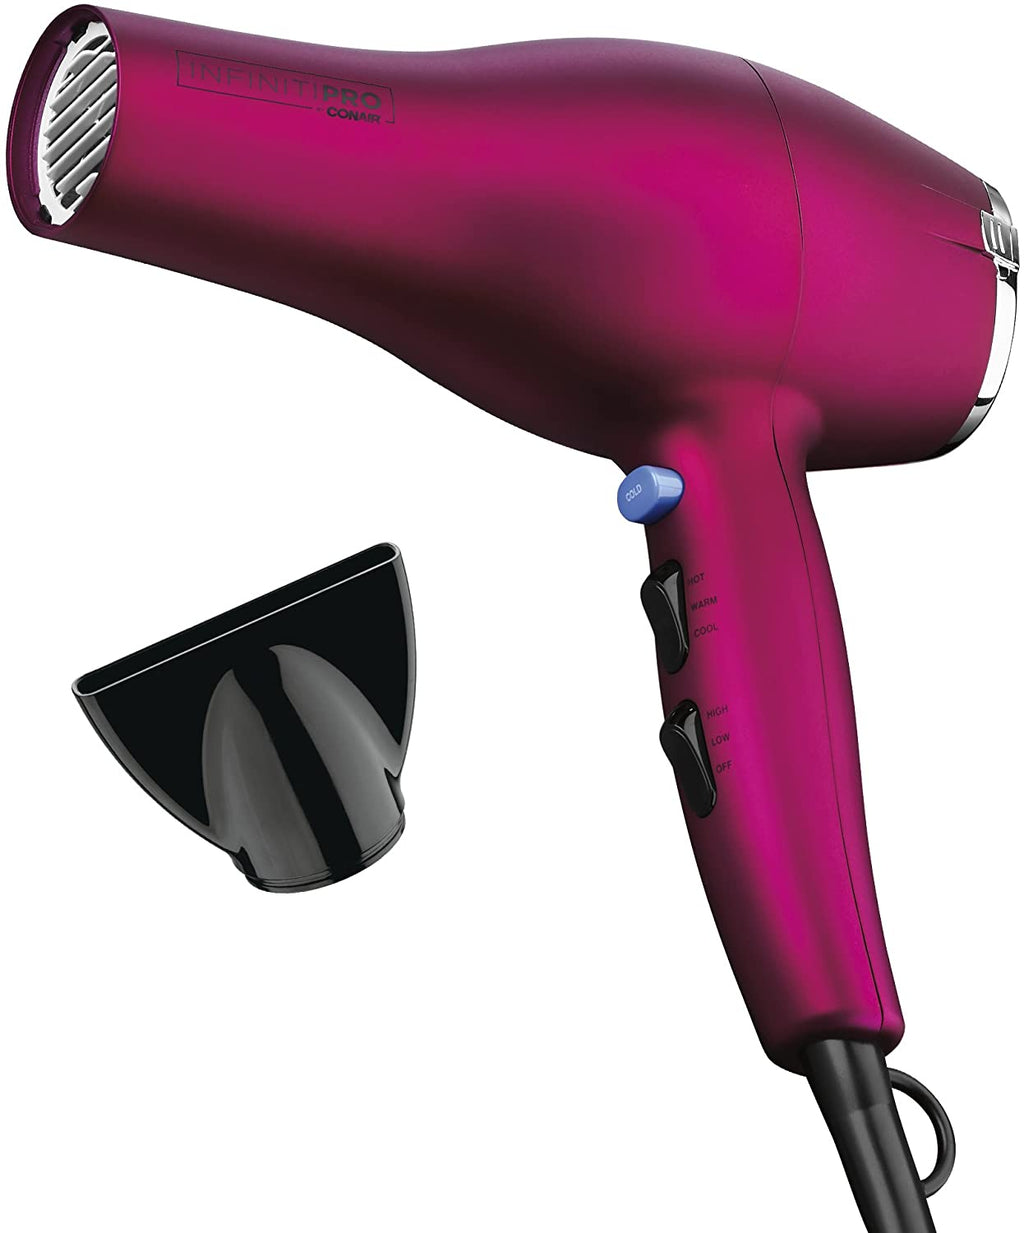 Infini Pro Professional Hairdryer